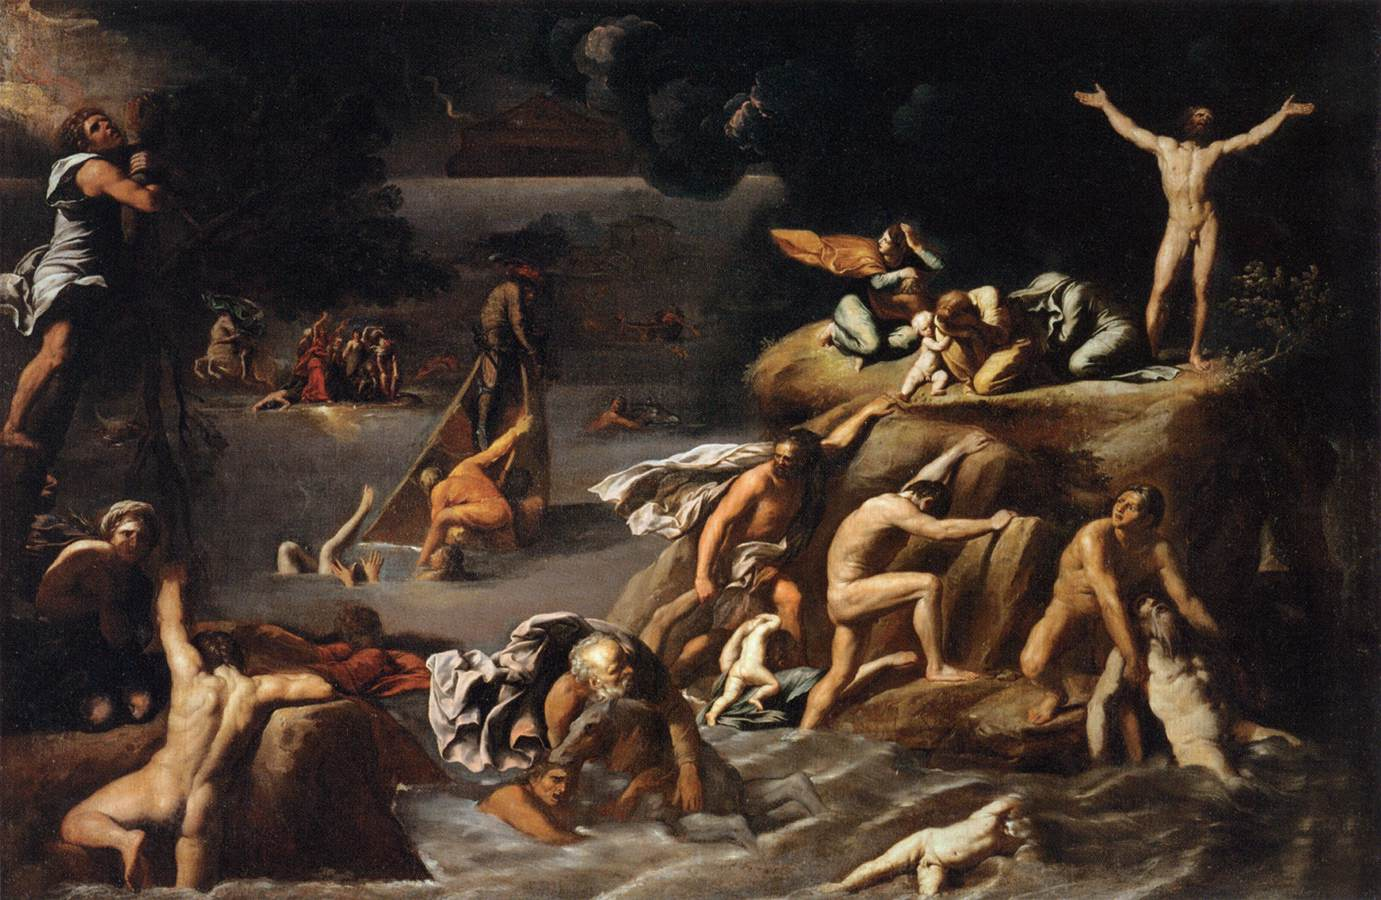 http://uploads6.wikipaintings.org/images/agostino-carracci/the-flood.jpg